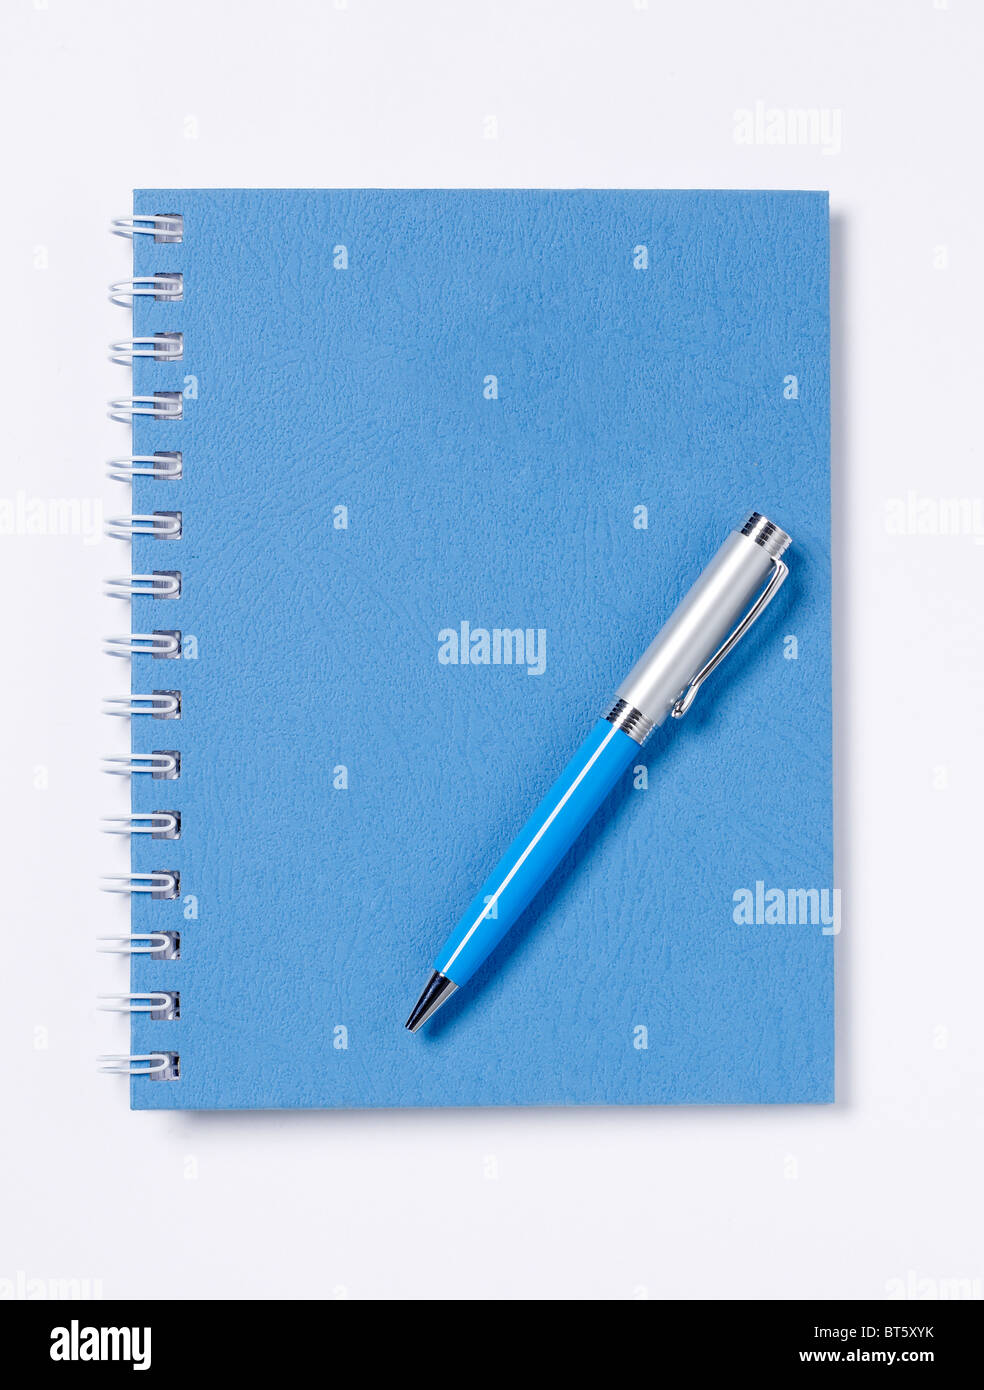 Spiral Blue Book diary ledger with pen elevated view - Stock Image